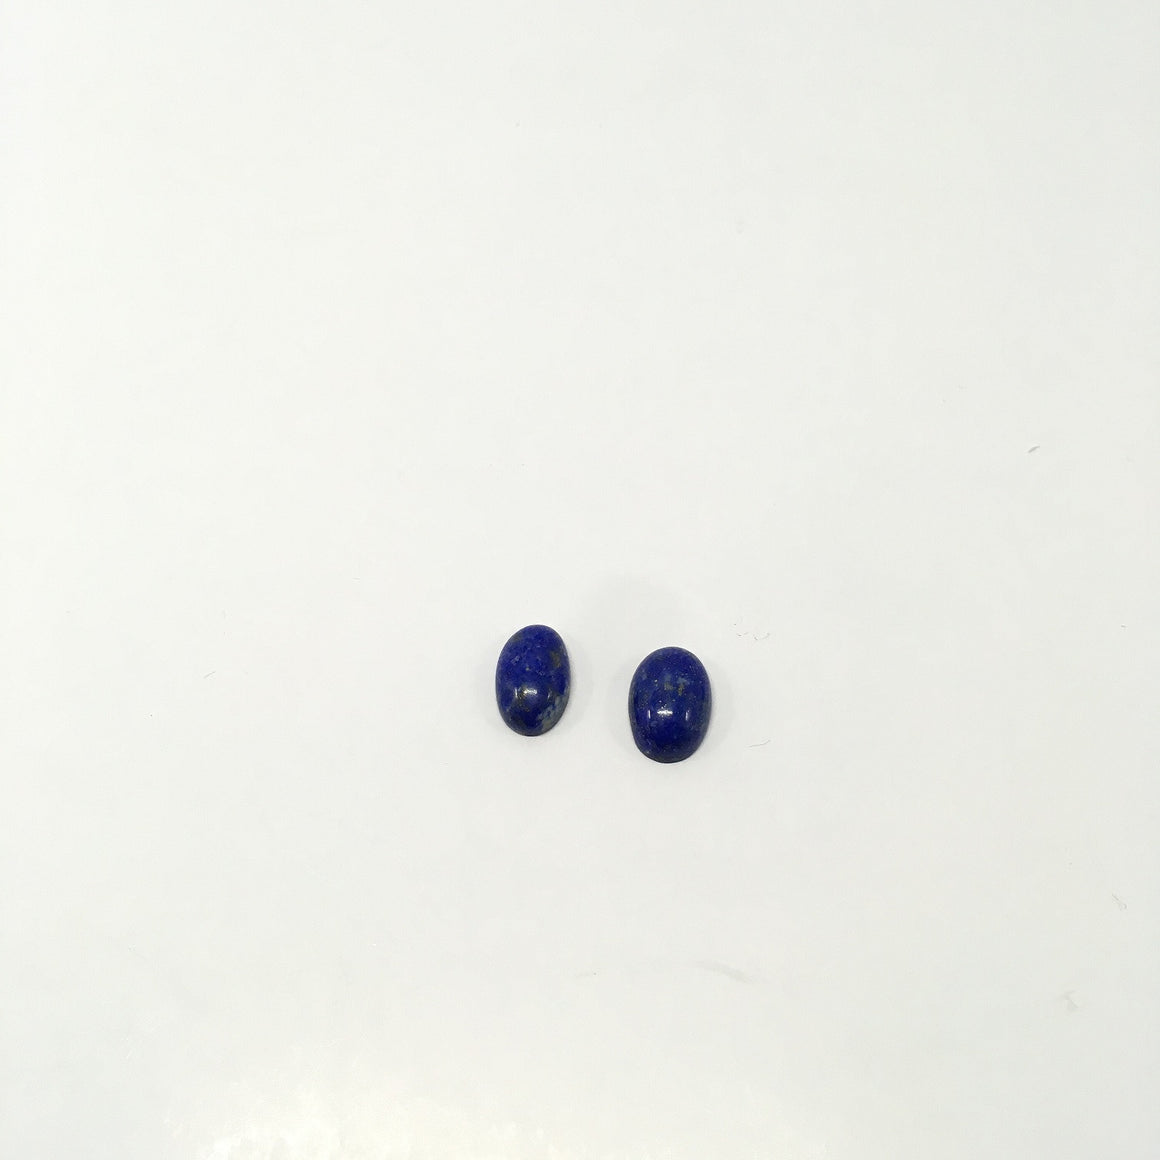 Lapis Lazuli Cabochon - Lapis Cabochon For Ring Oval Cut - 9.20 Carat